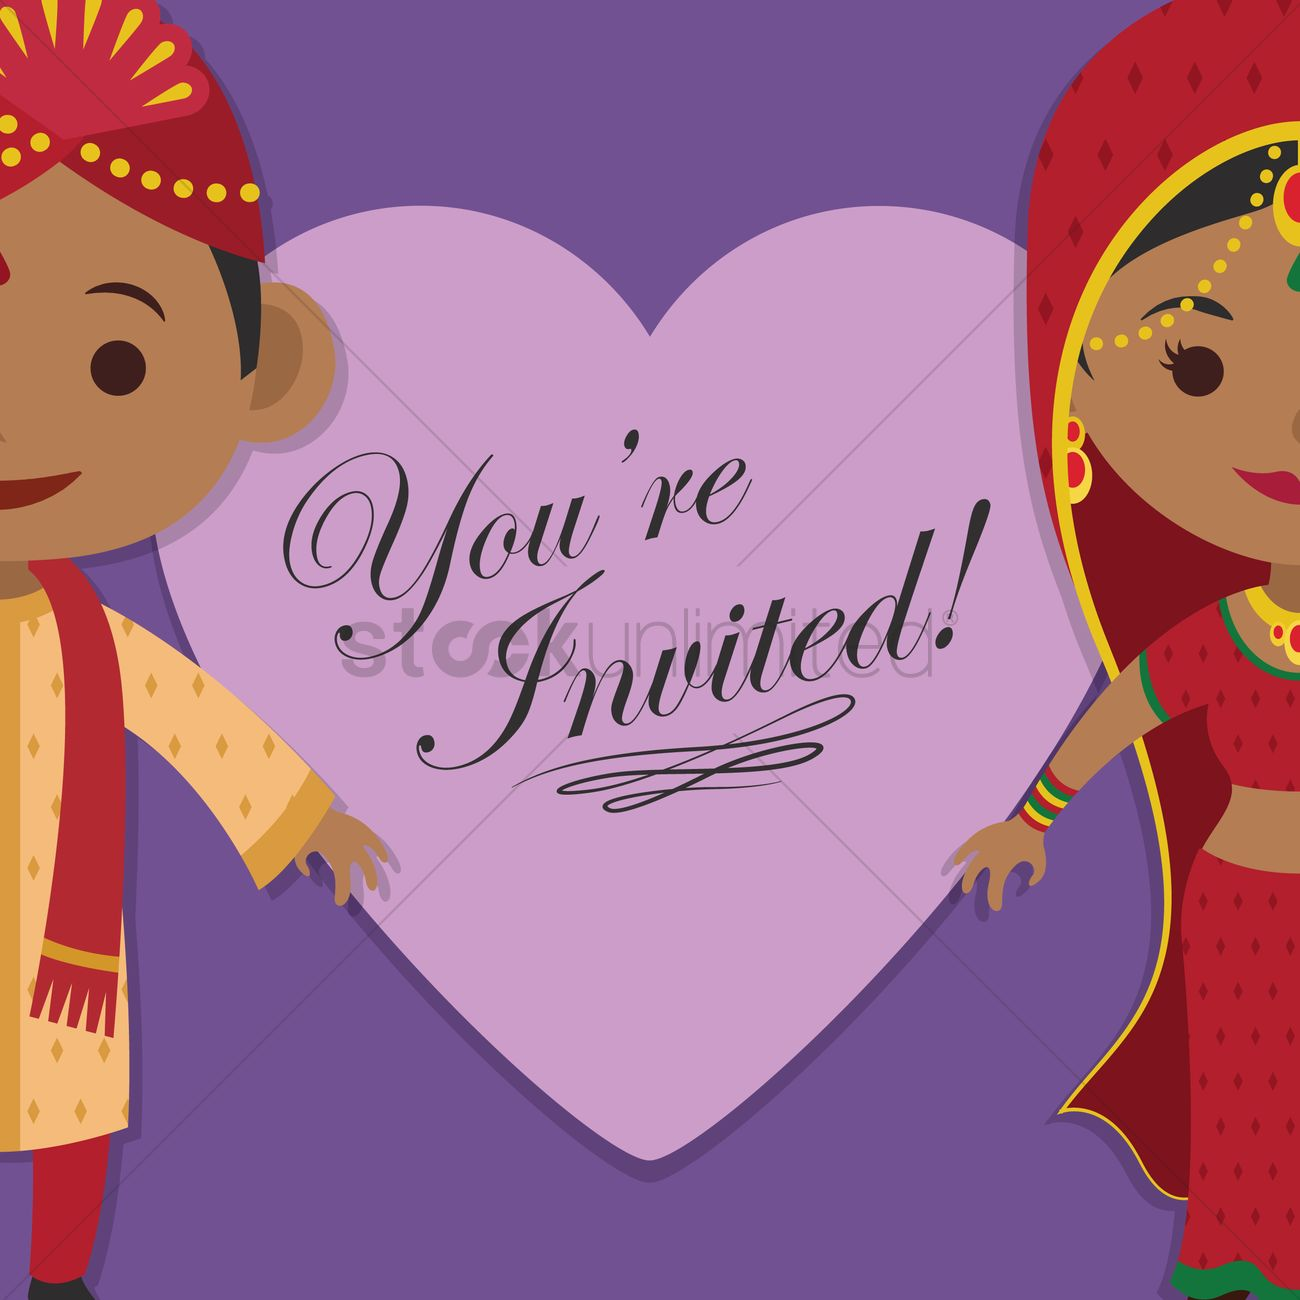 Indian wedding invitation vector image 1244217 stockunlimited indian wedding invitation vector graphic stopboris Image collections